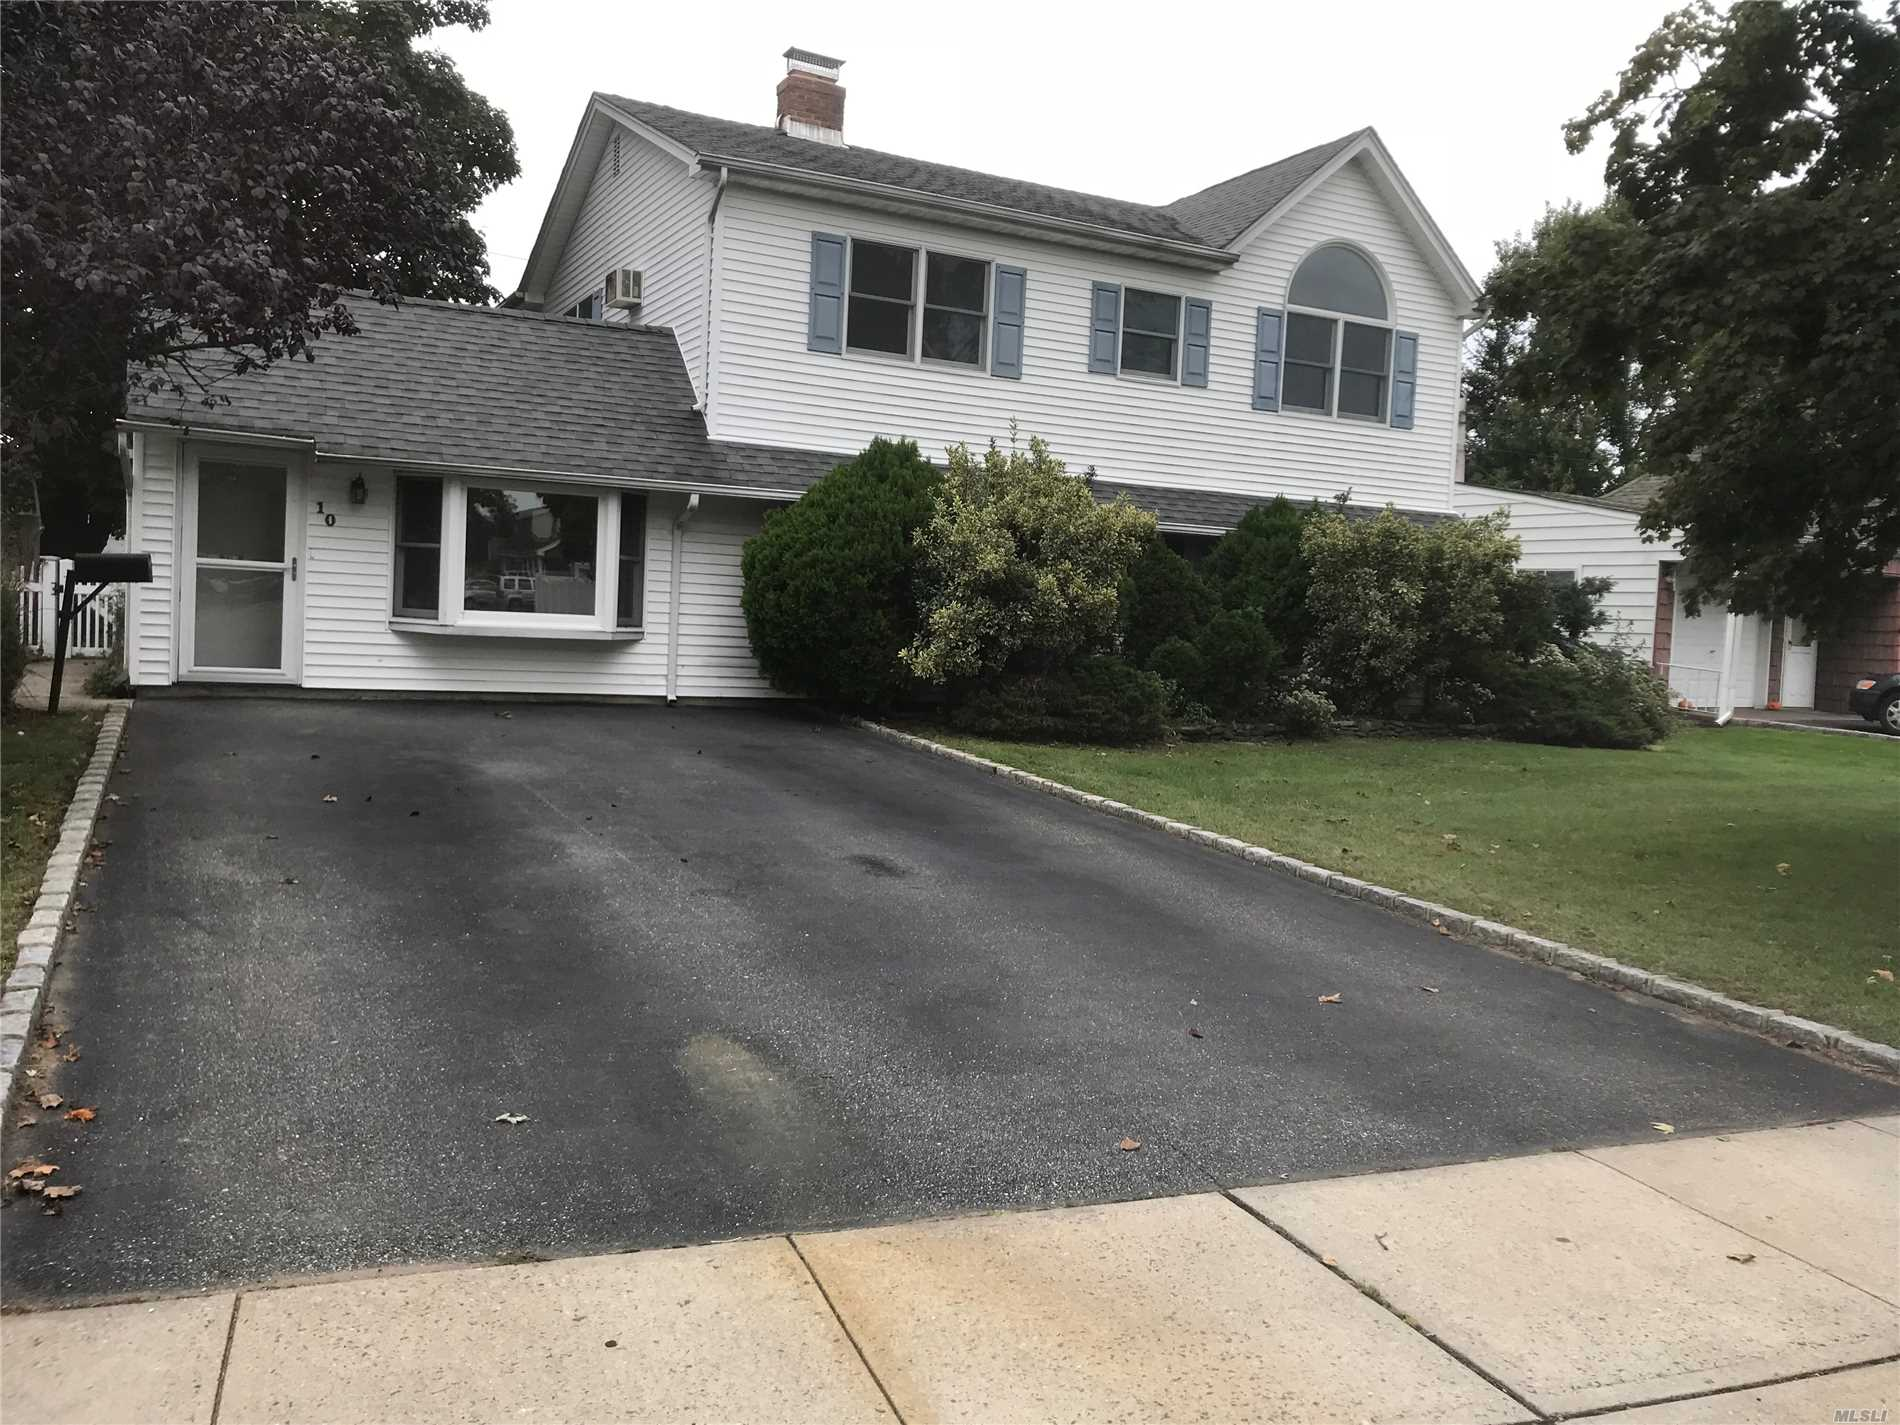 7 Bedrooms, 3 Full Bath, Colonial, 4 Car Driveway. Completely Renovated With New Kitchen With Ss Appliances, Granite Countertop, Wood Floors. Move In Condition